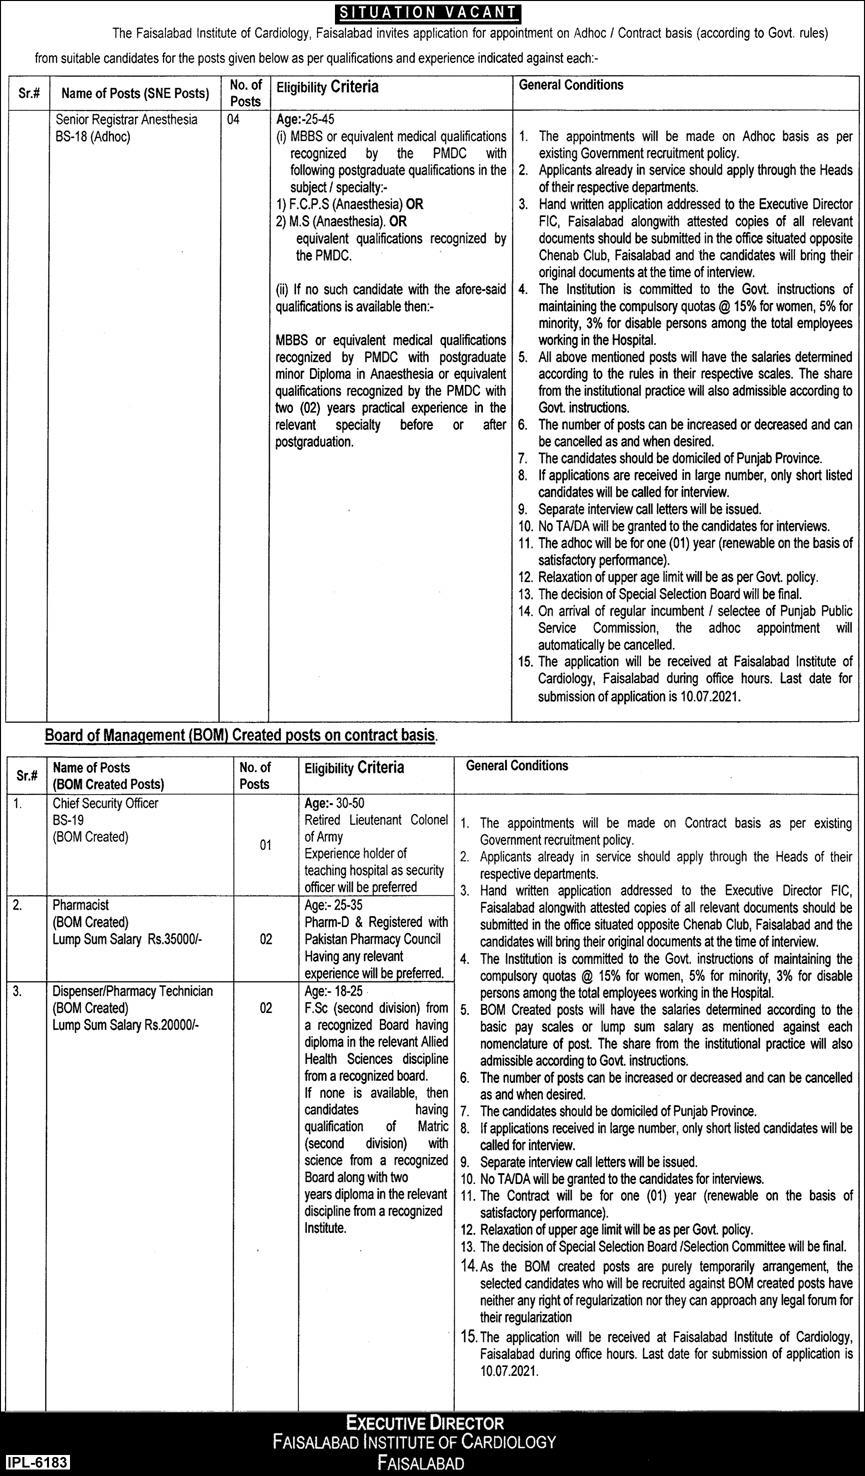 FIC Faisalabad Institute of Cardiology Jobs 2021